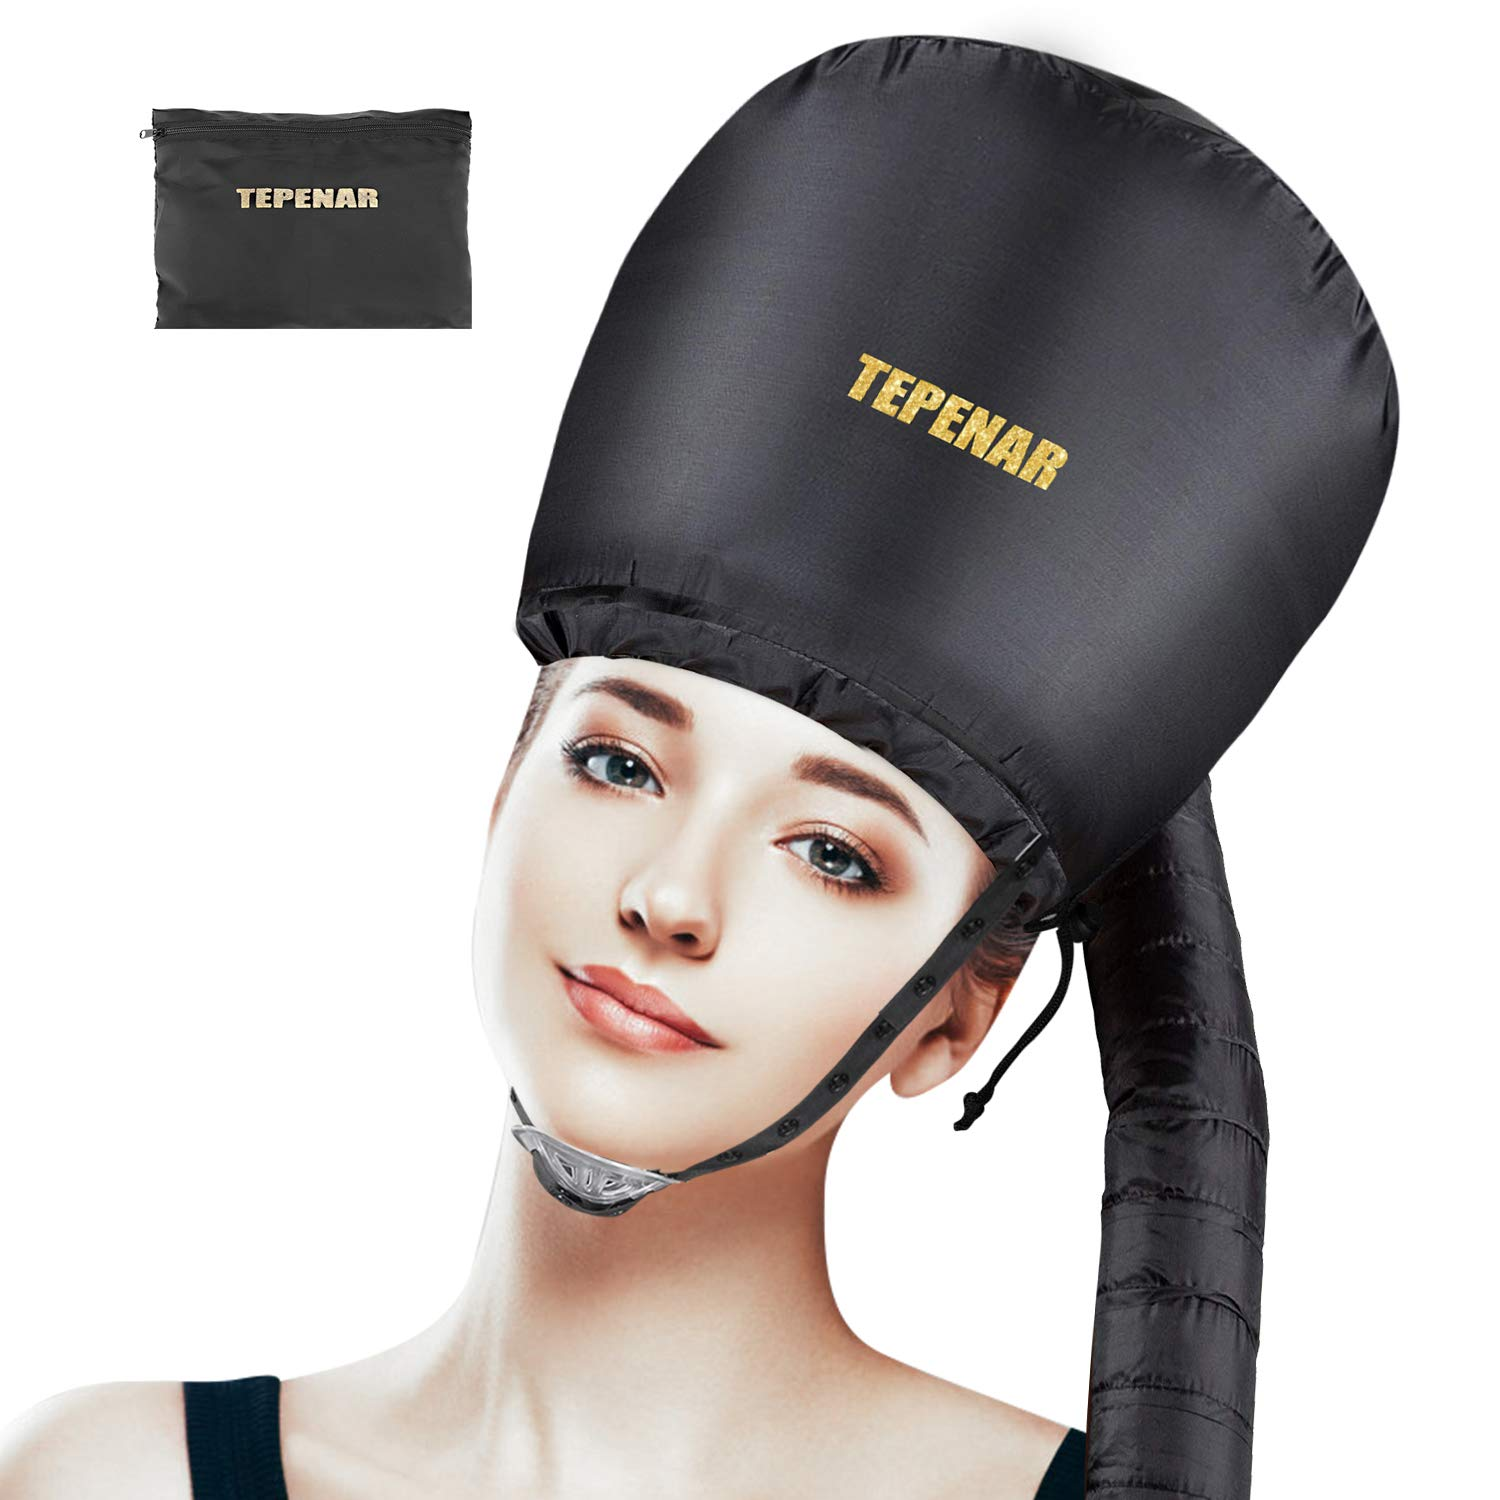 Bonnet Hood Hair Dryer Attachment by TEPENAR - Adjustable Extra Large Soft Bonnet with Chin Strap Use For Deep Conditioning Hair Styling and Drying